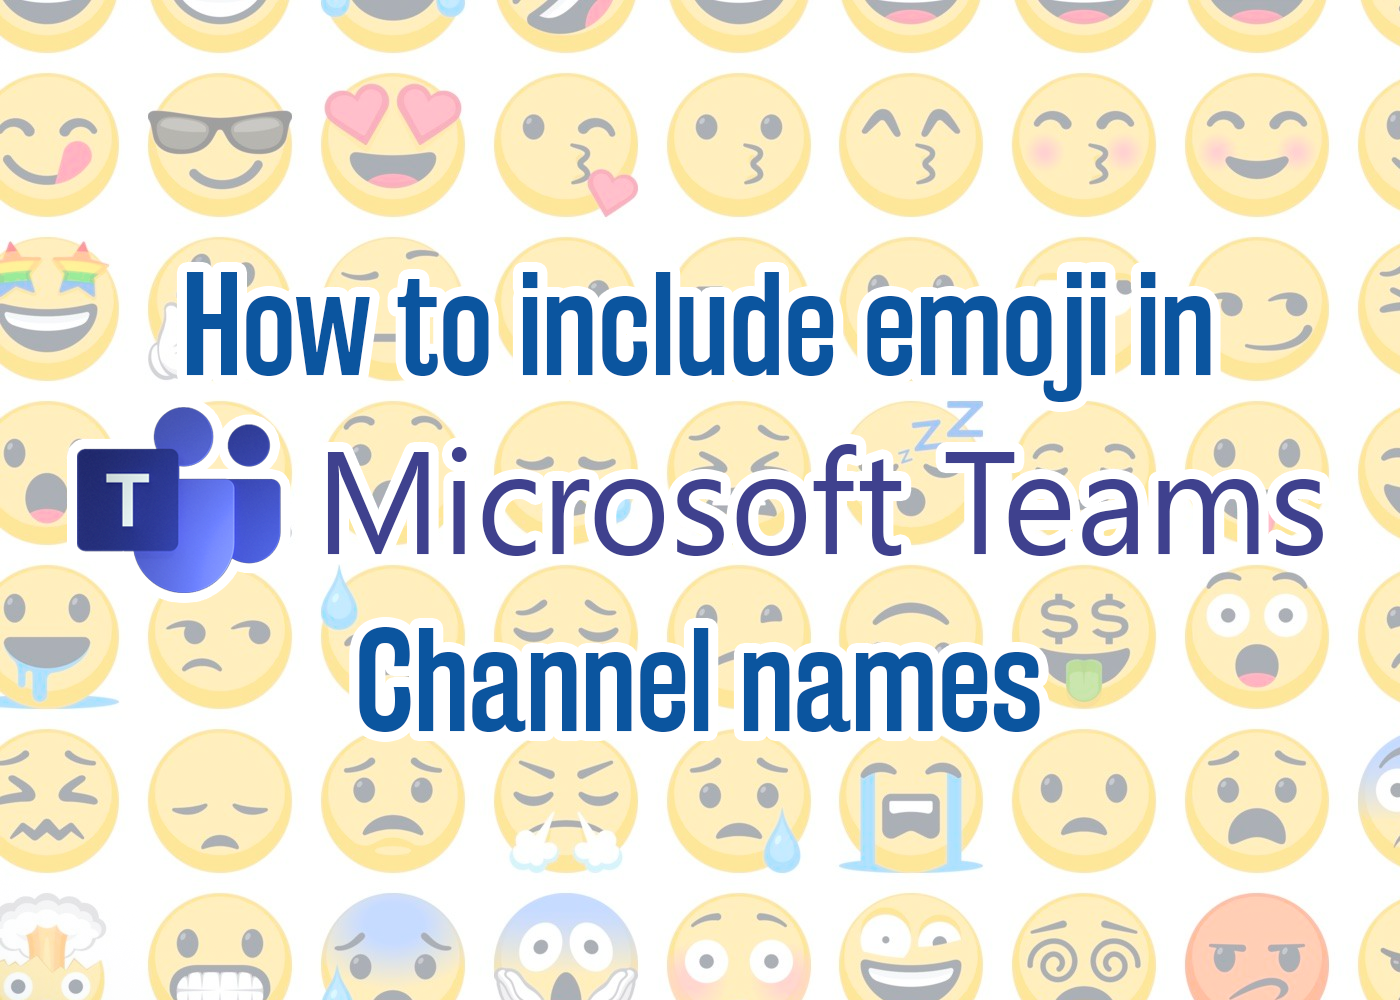 Add emoji to your Channels in Microsoft Teams - jumpto365 - Medium